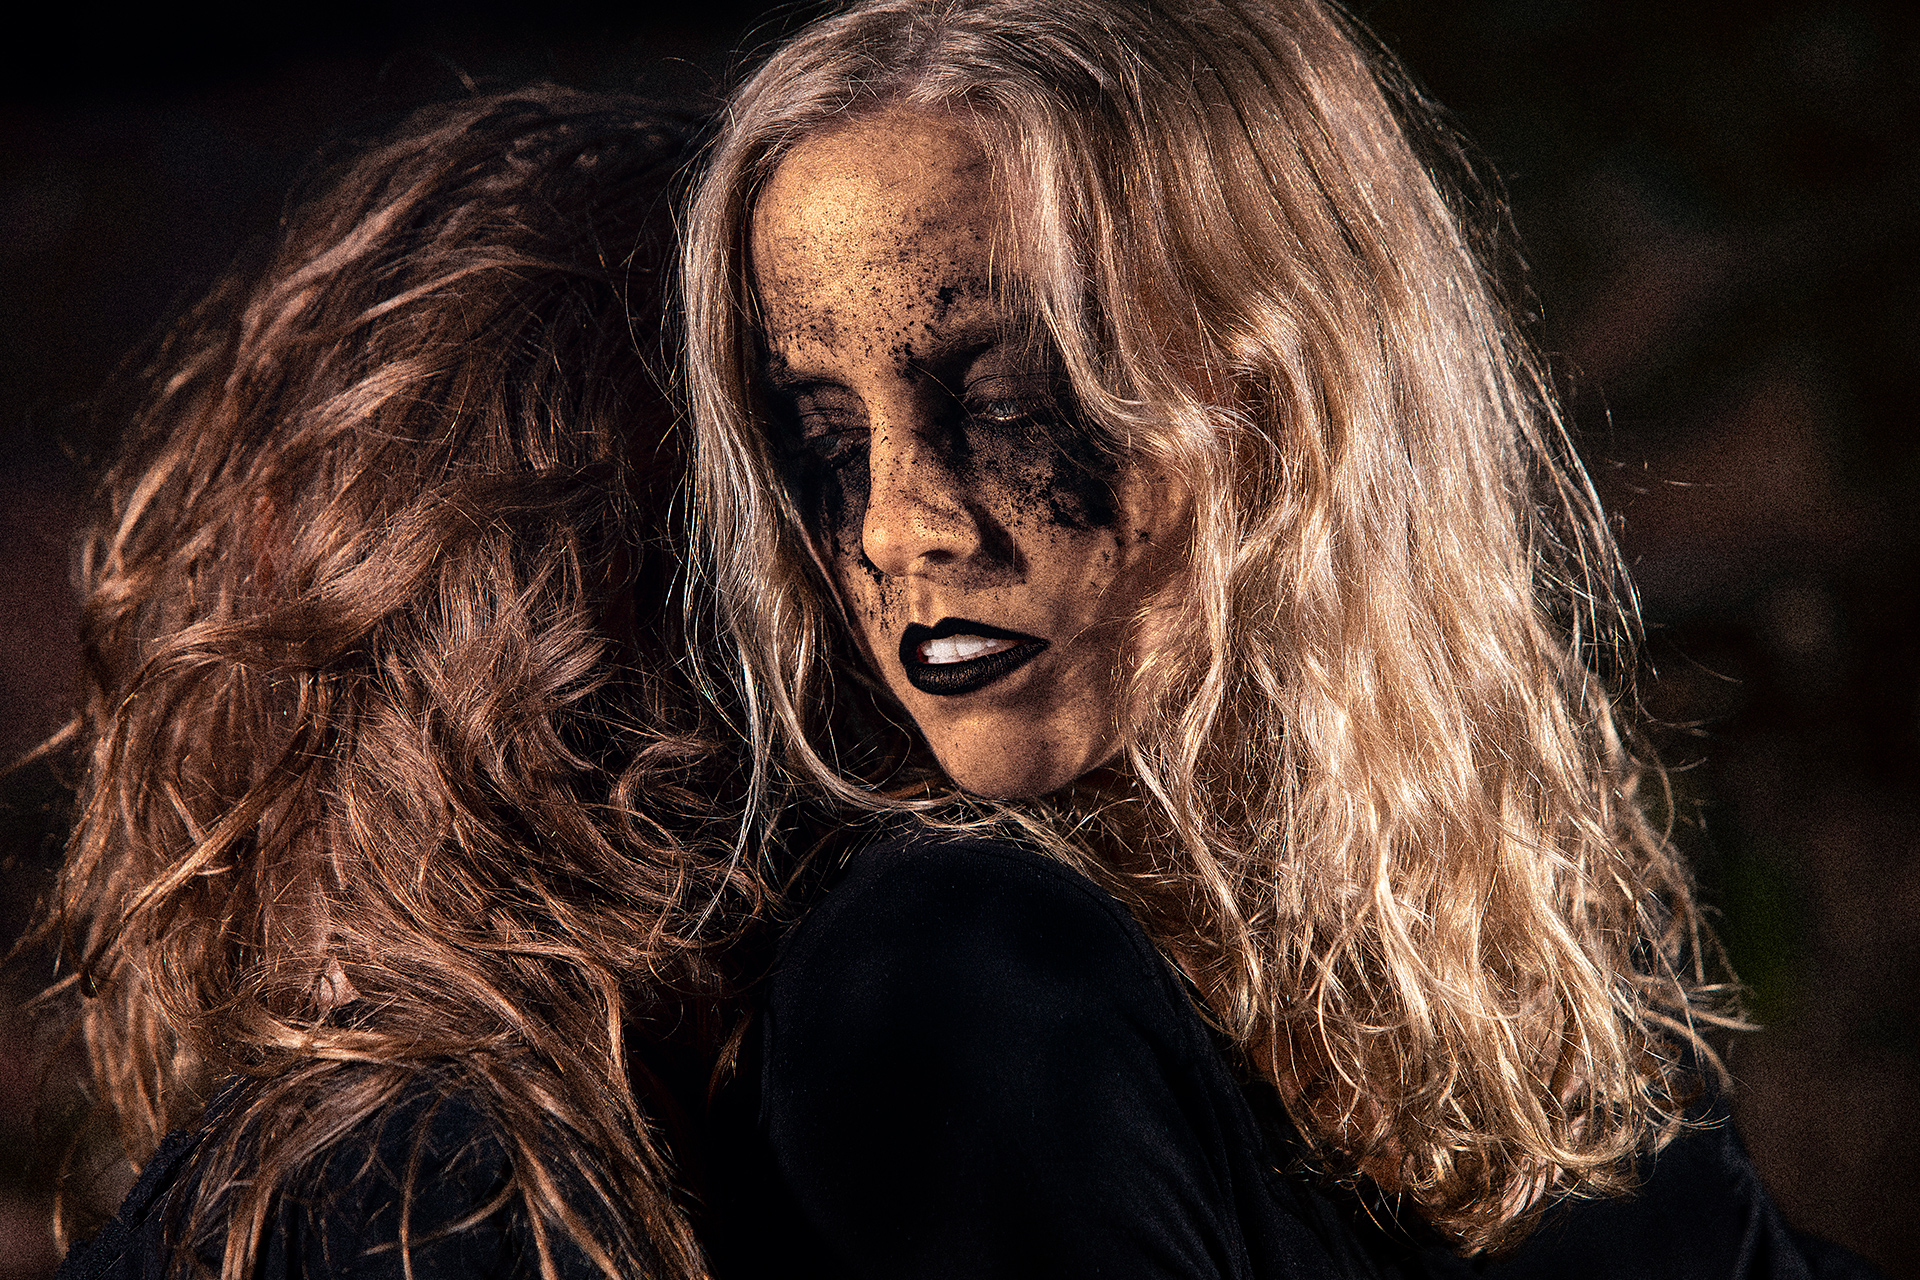 Stella Laine, Sonia Haga, Helsinki, model, gold, dark aesthetics, art, thrash, trash, photost, photo session